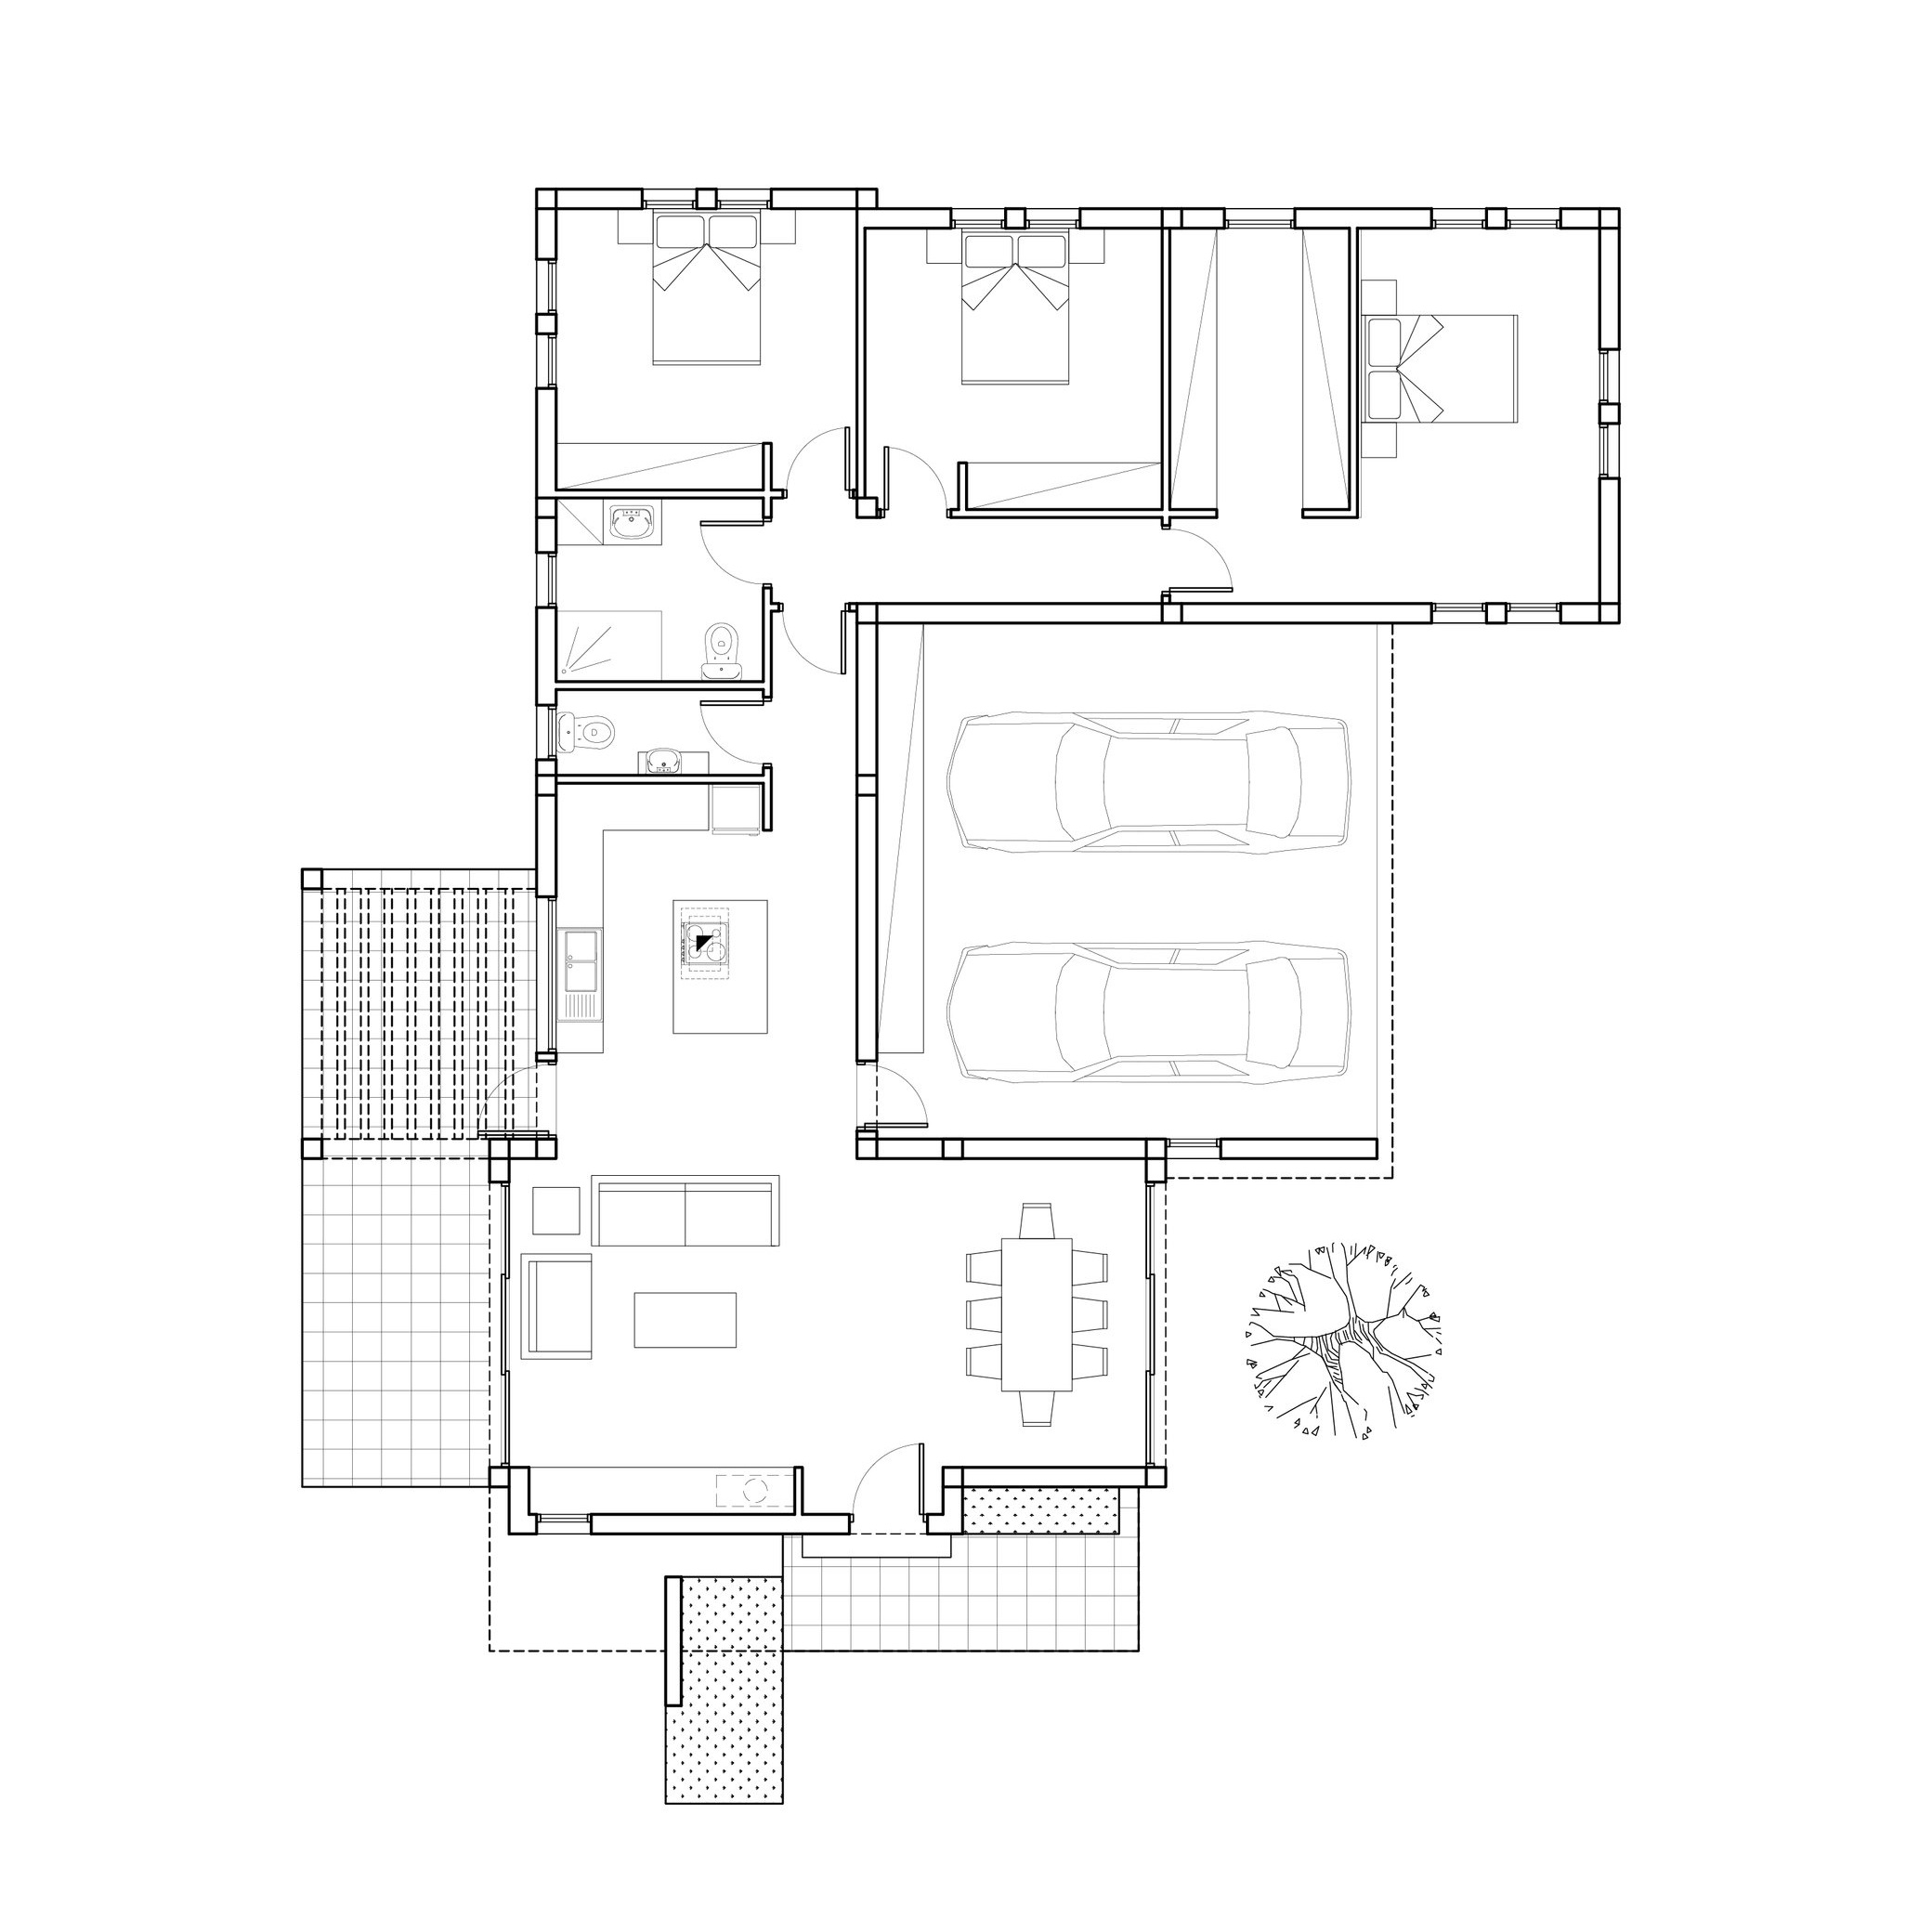 ARCHITECTURAL FLOOR PLAN - COMPACT FAMILY HOUSE